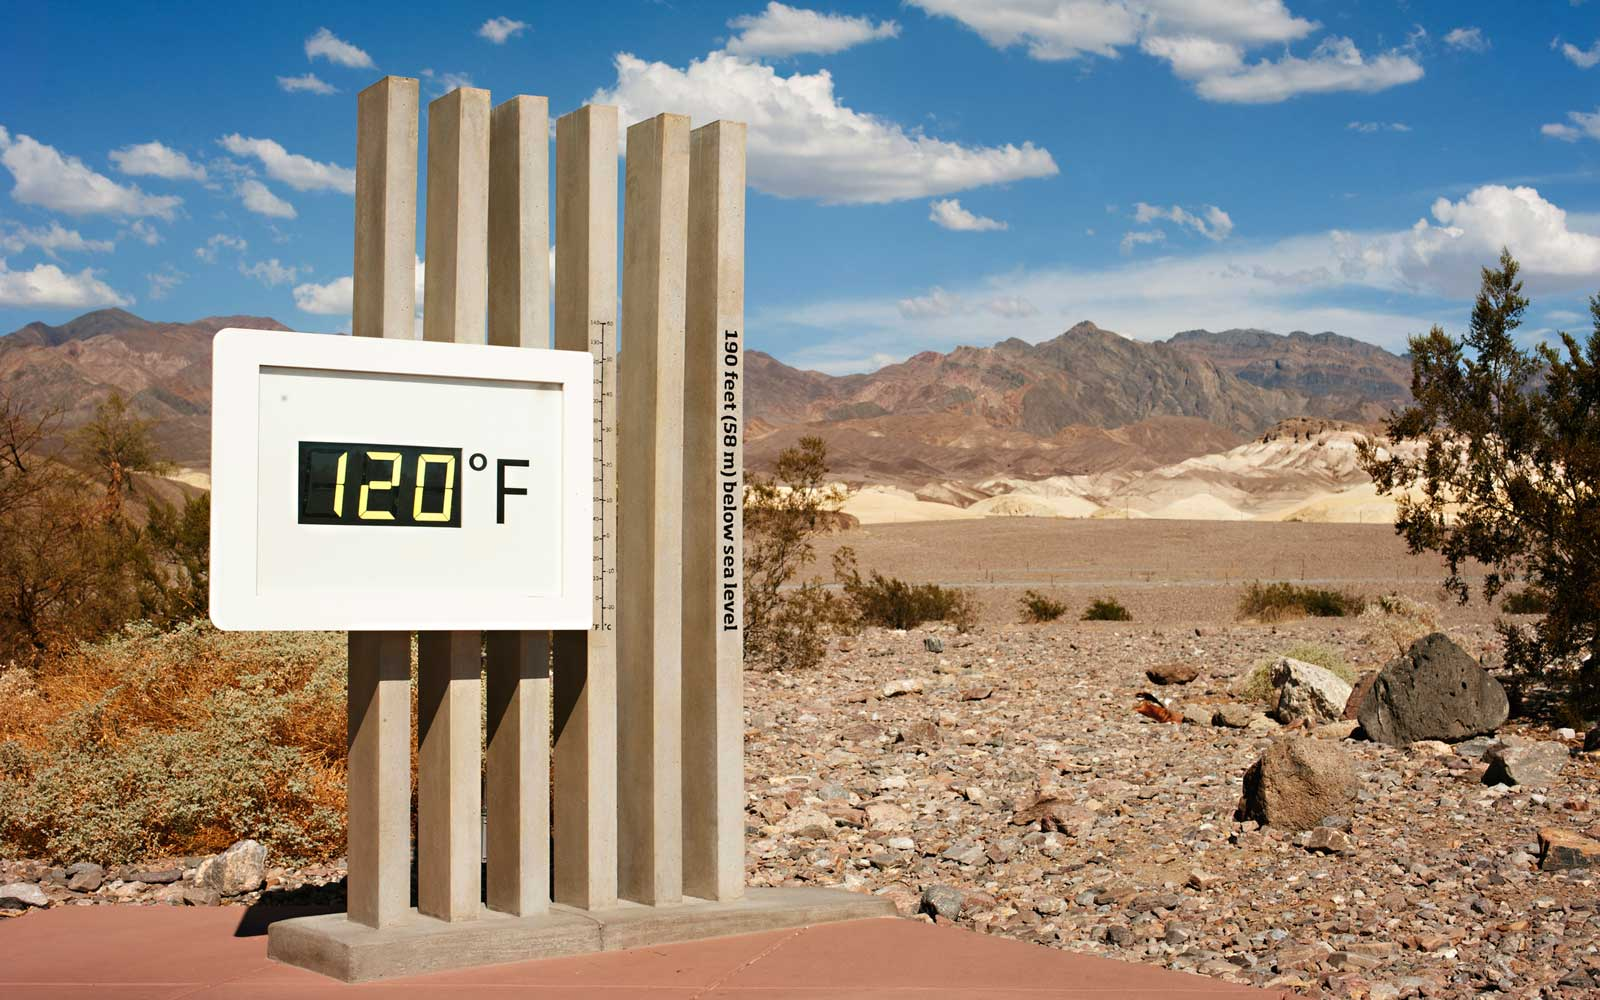 120 degrees Fahrenheit at Furnace Creek in Death Valley on a late afternoon in early September.